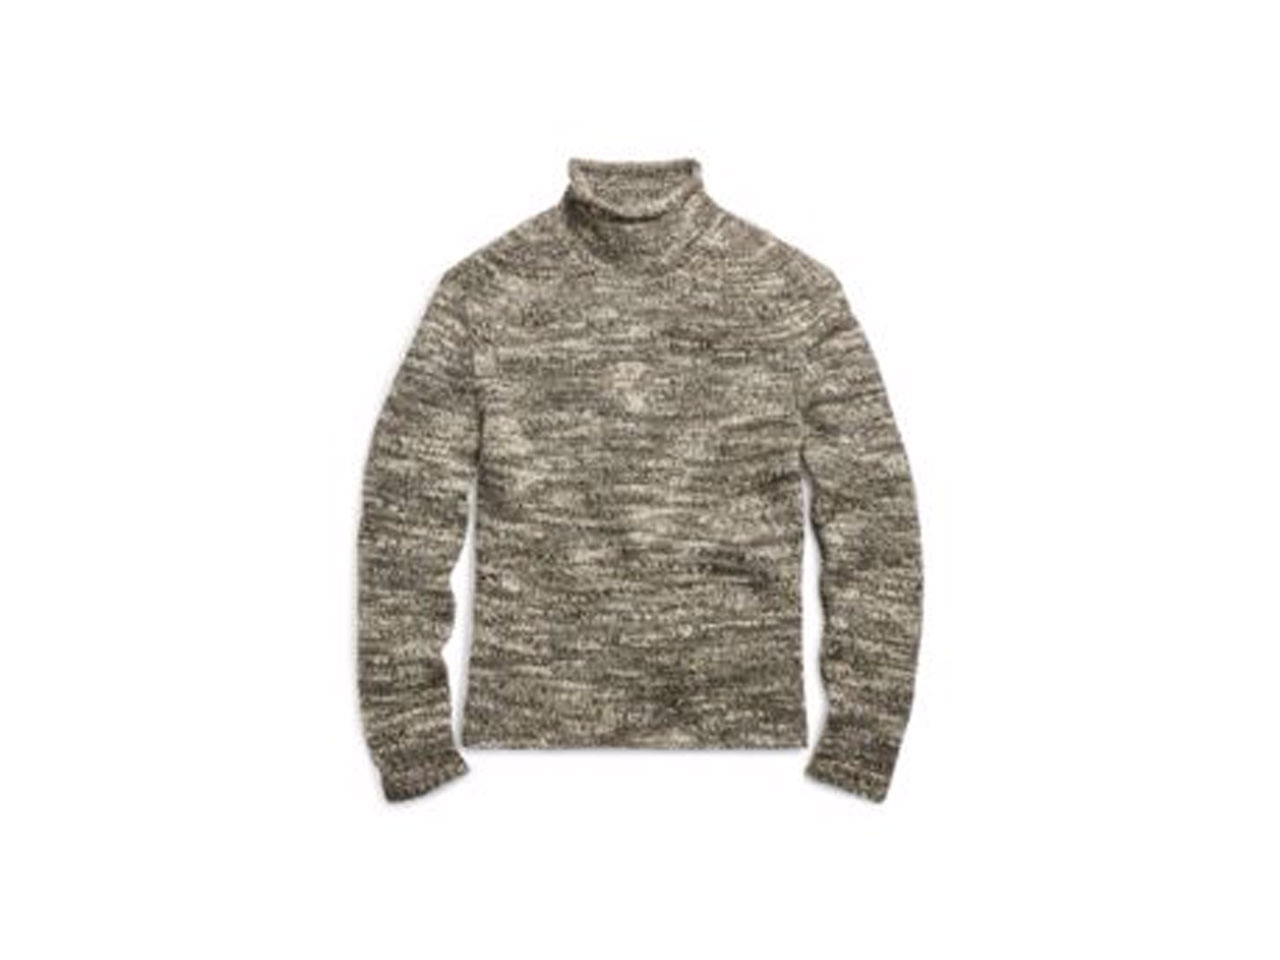 The Iconic Wool Rollneck by Polo Ralph Lauren